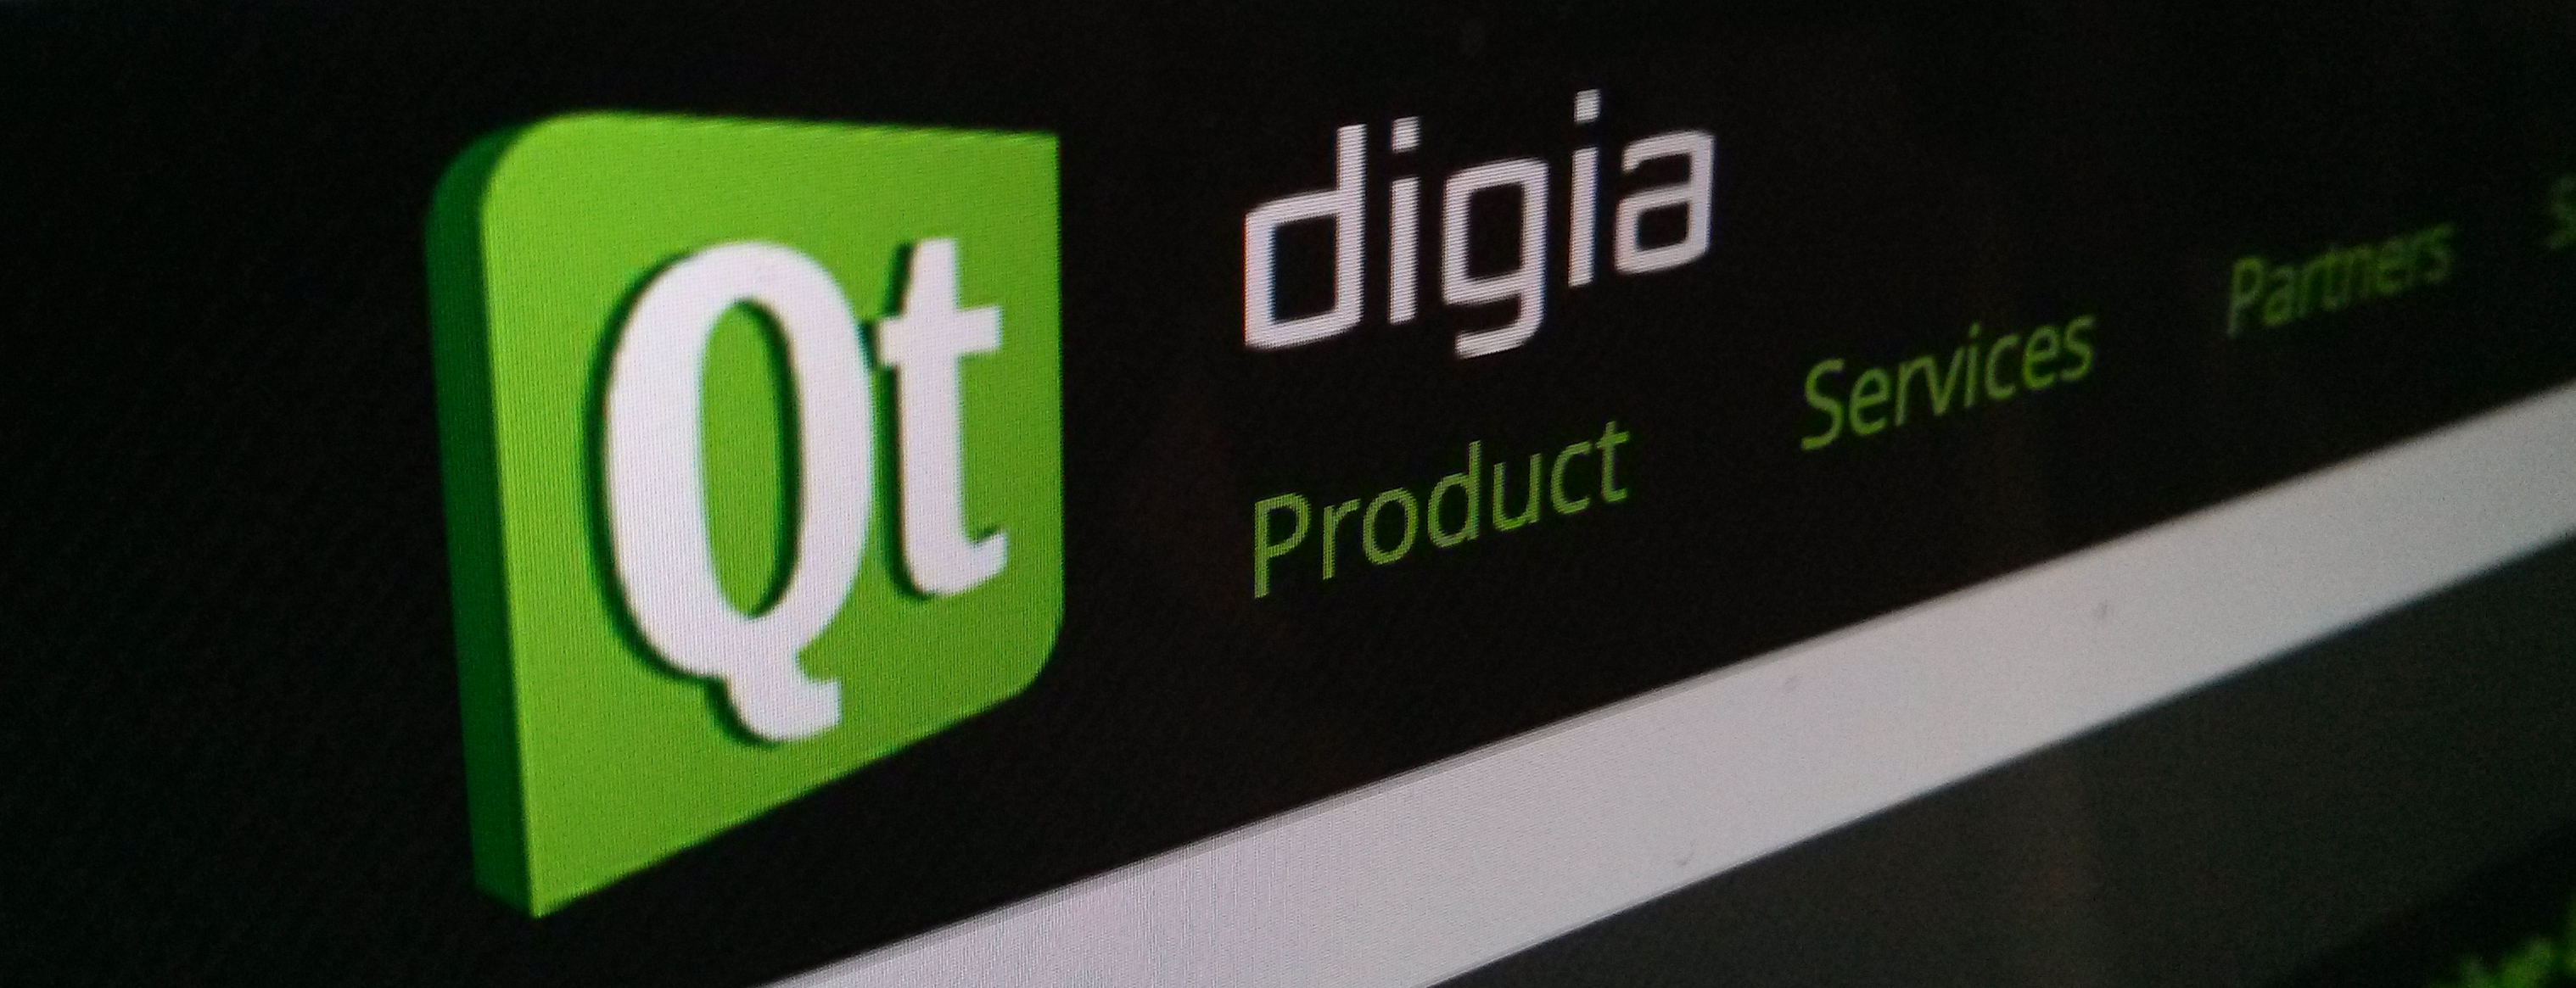 Digia releases Qt 5.2 with Android and iOS support, previews Windows RT, and launches Qt mobile edition